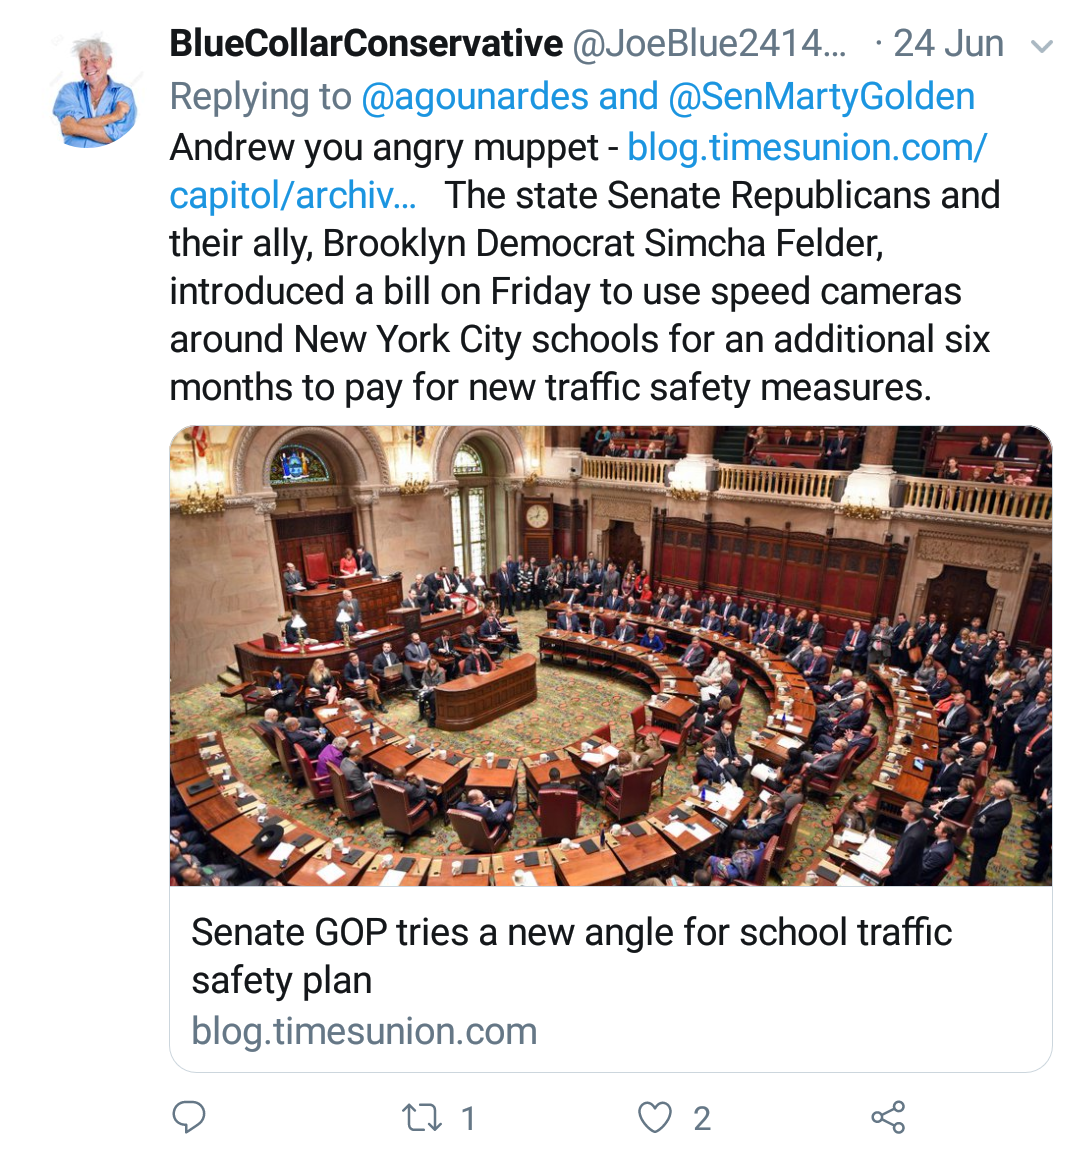 "Blue Collar Conservative Tweeted: ""Andrew you angry muppet"" replying to @RossBarkan and @SenMartyGolden linking to a timesunion.com article about Senate GOP plans for school traffic safety."